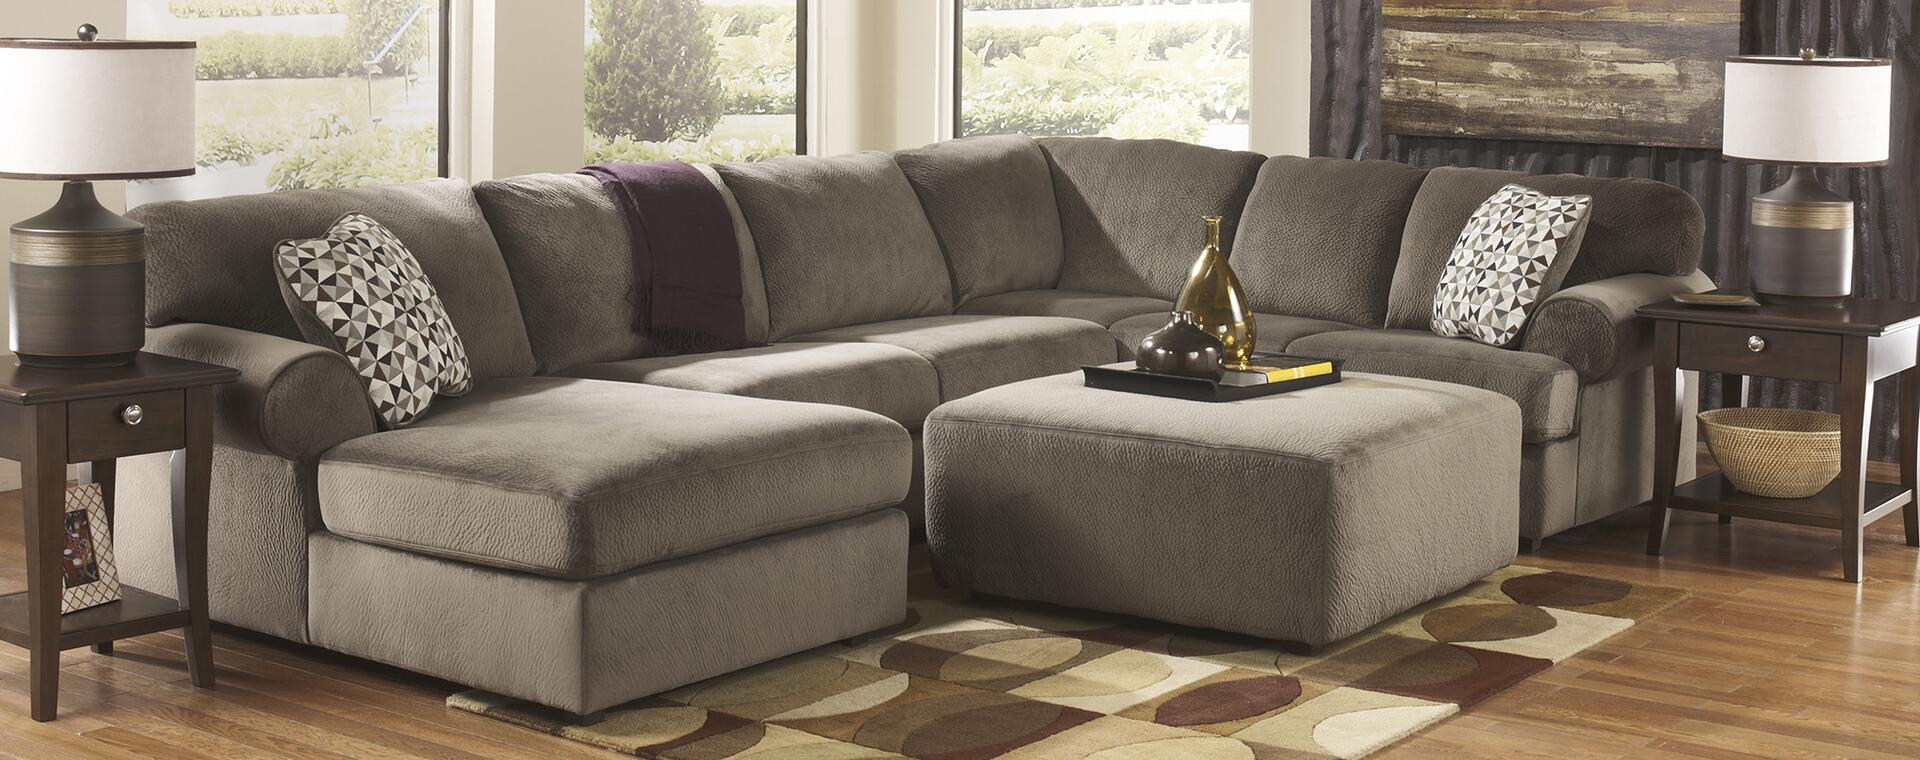 ashley sofa place couch jessa dune sectional furniture brown